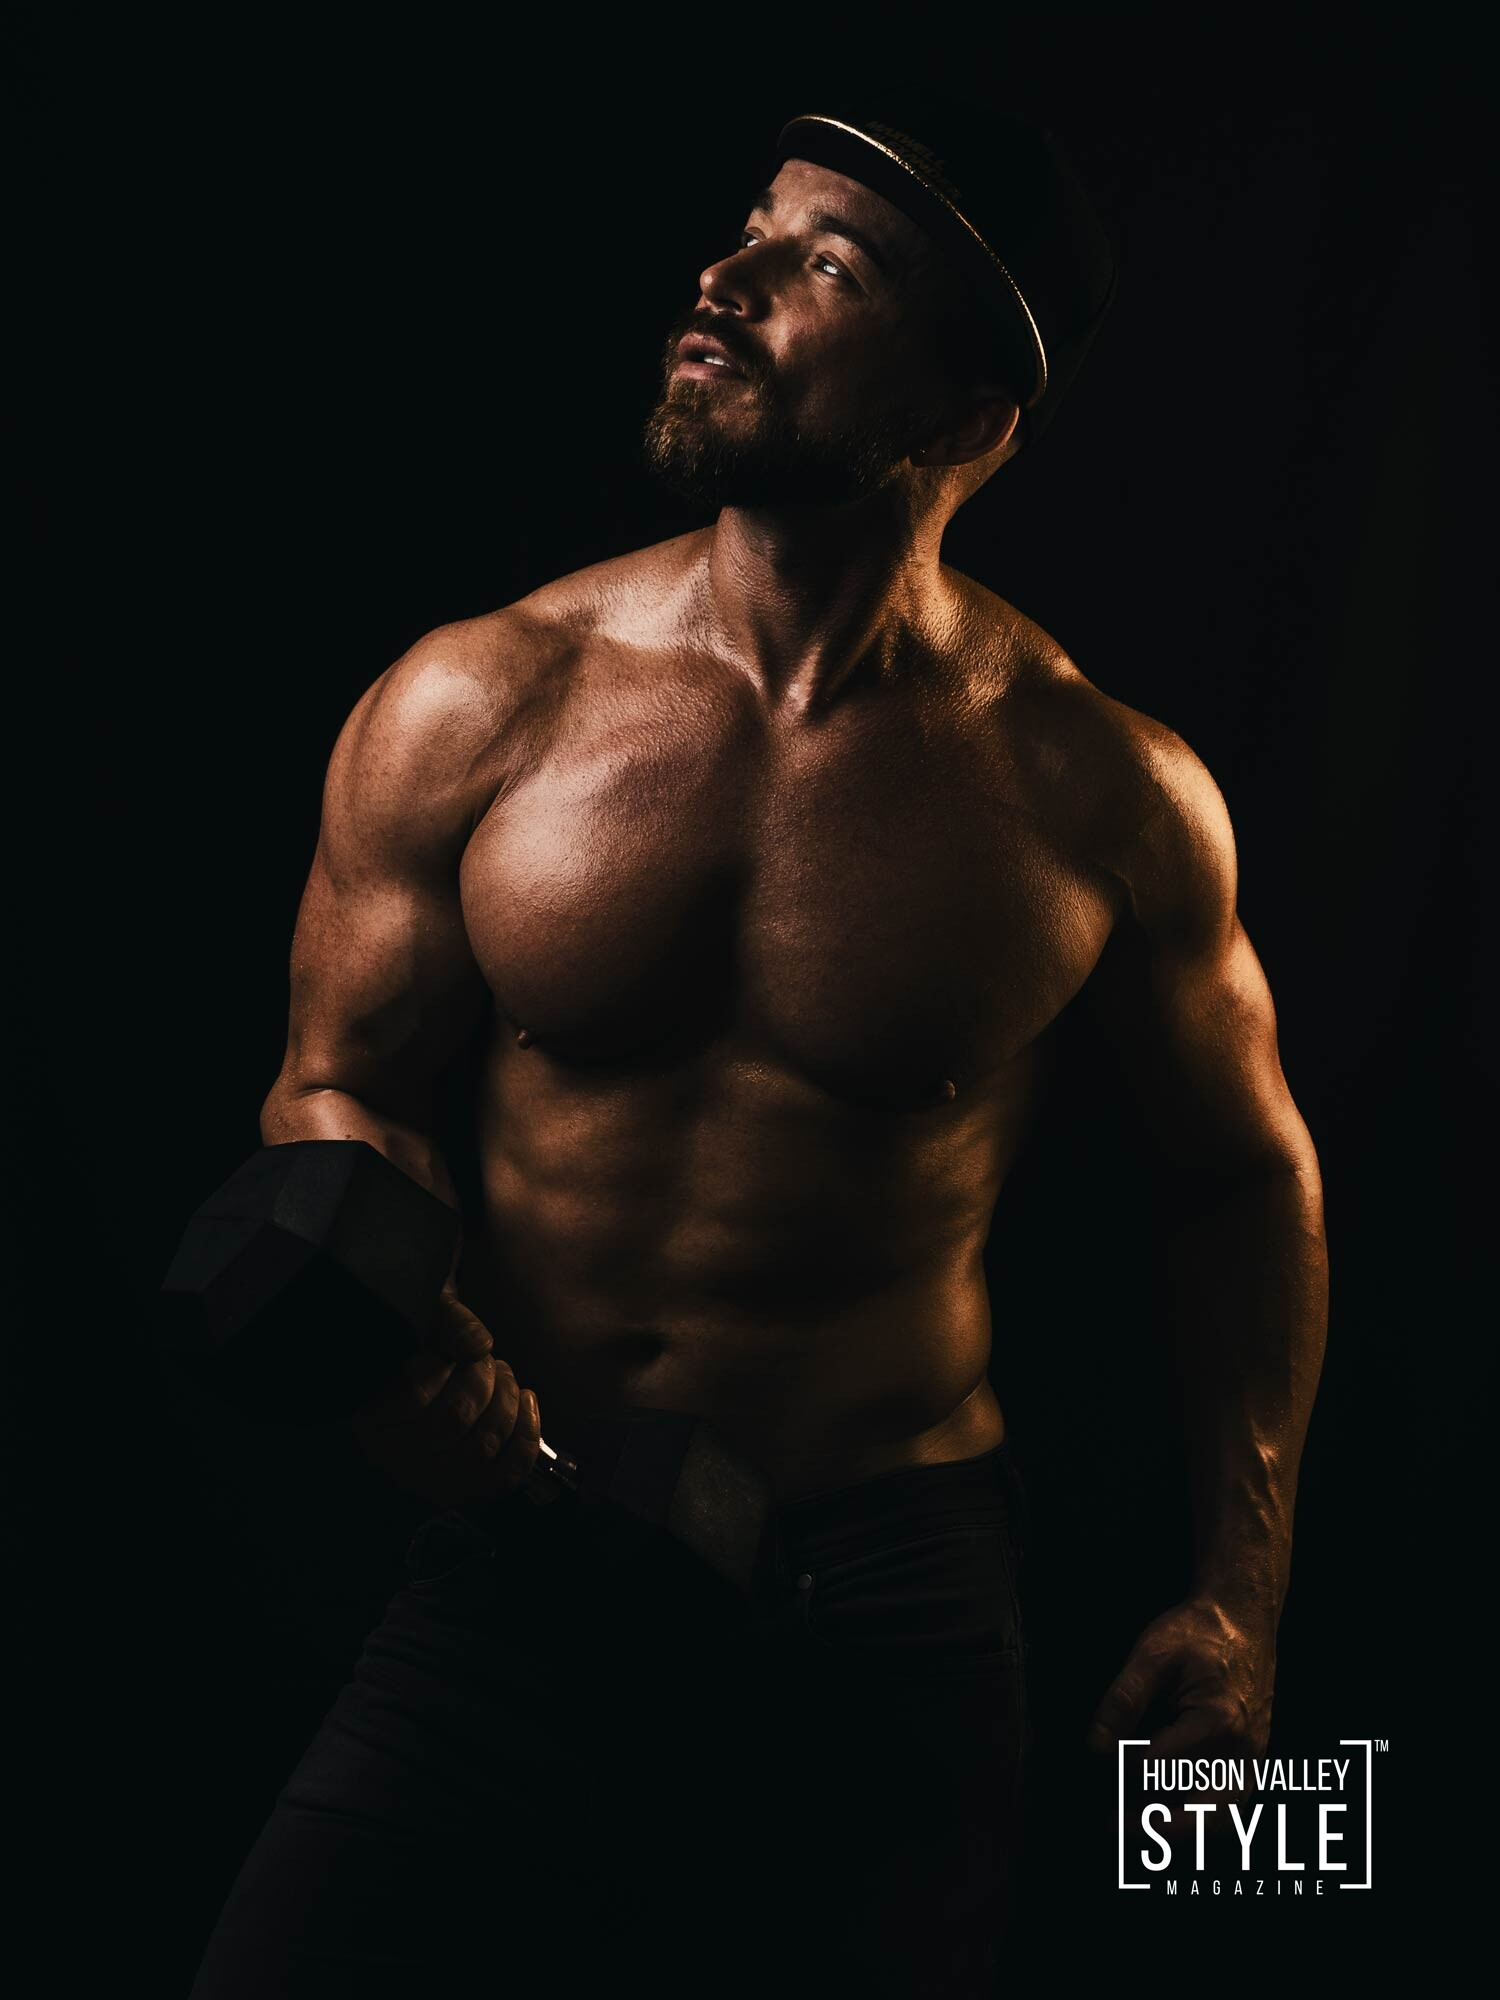 Bodybuilding 101 with Coach Maxwell Alexander, MA, BFA, ISSA Certified Fitness Trainer, ISSA Certified Bodybuilding Coach – Best Gay OnlyFans Fitness Model – Fitness and Bodybuilding Photography by Duncan Avenue Studios, New York